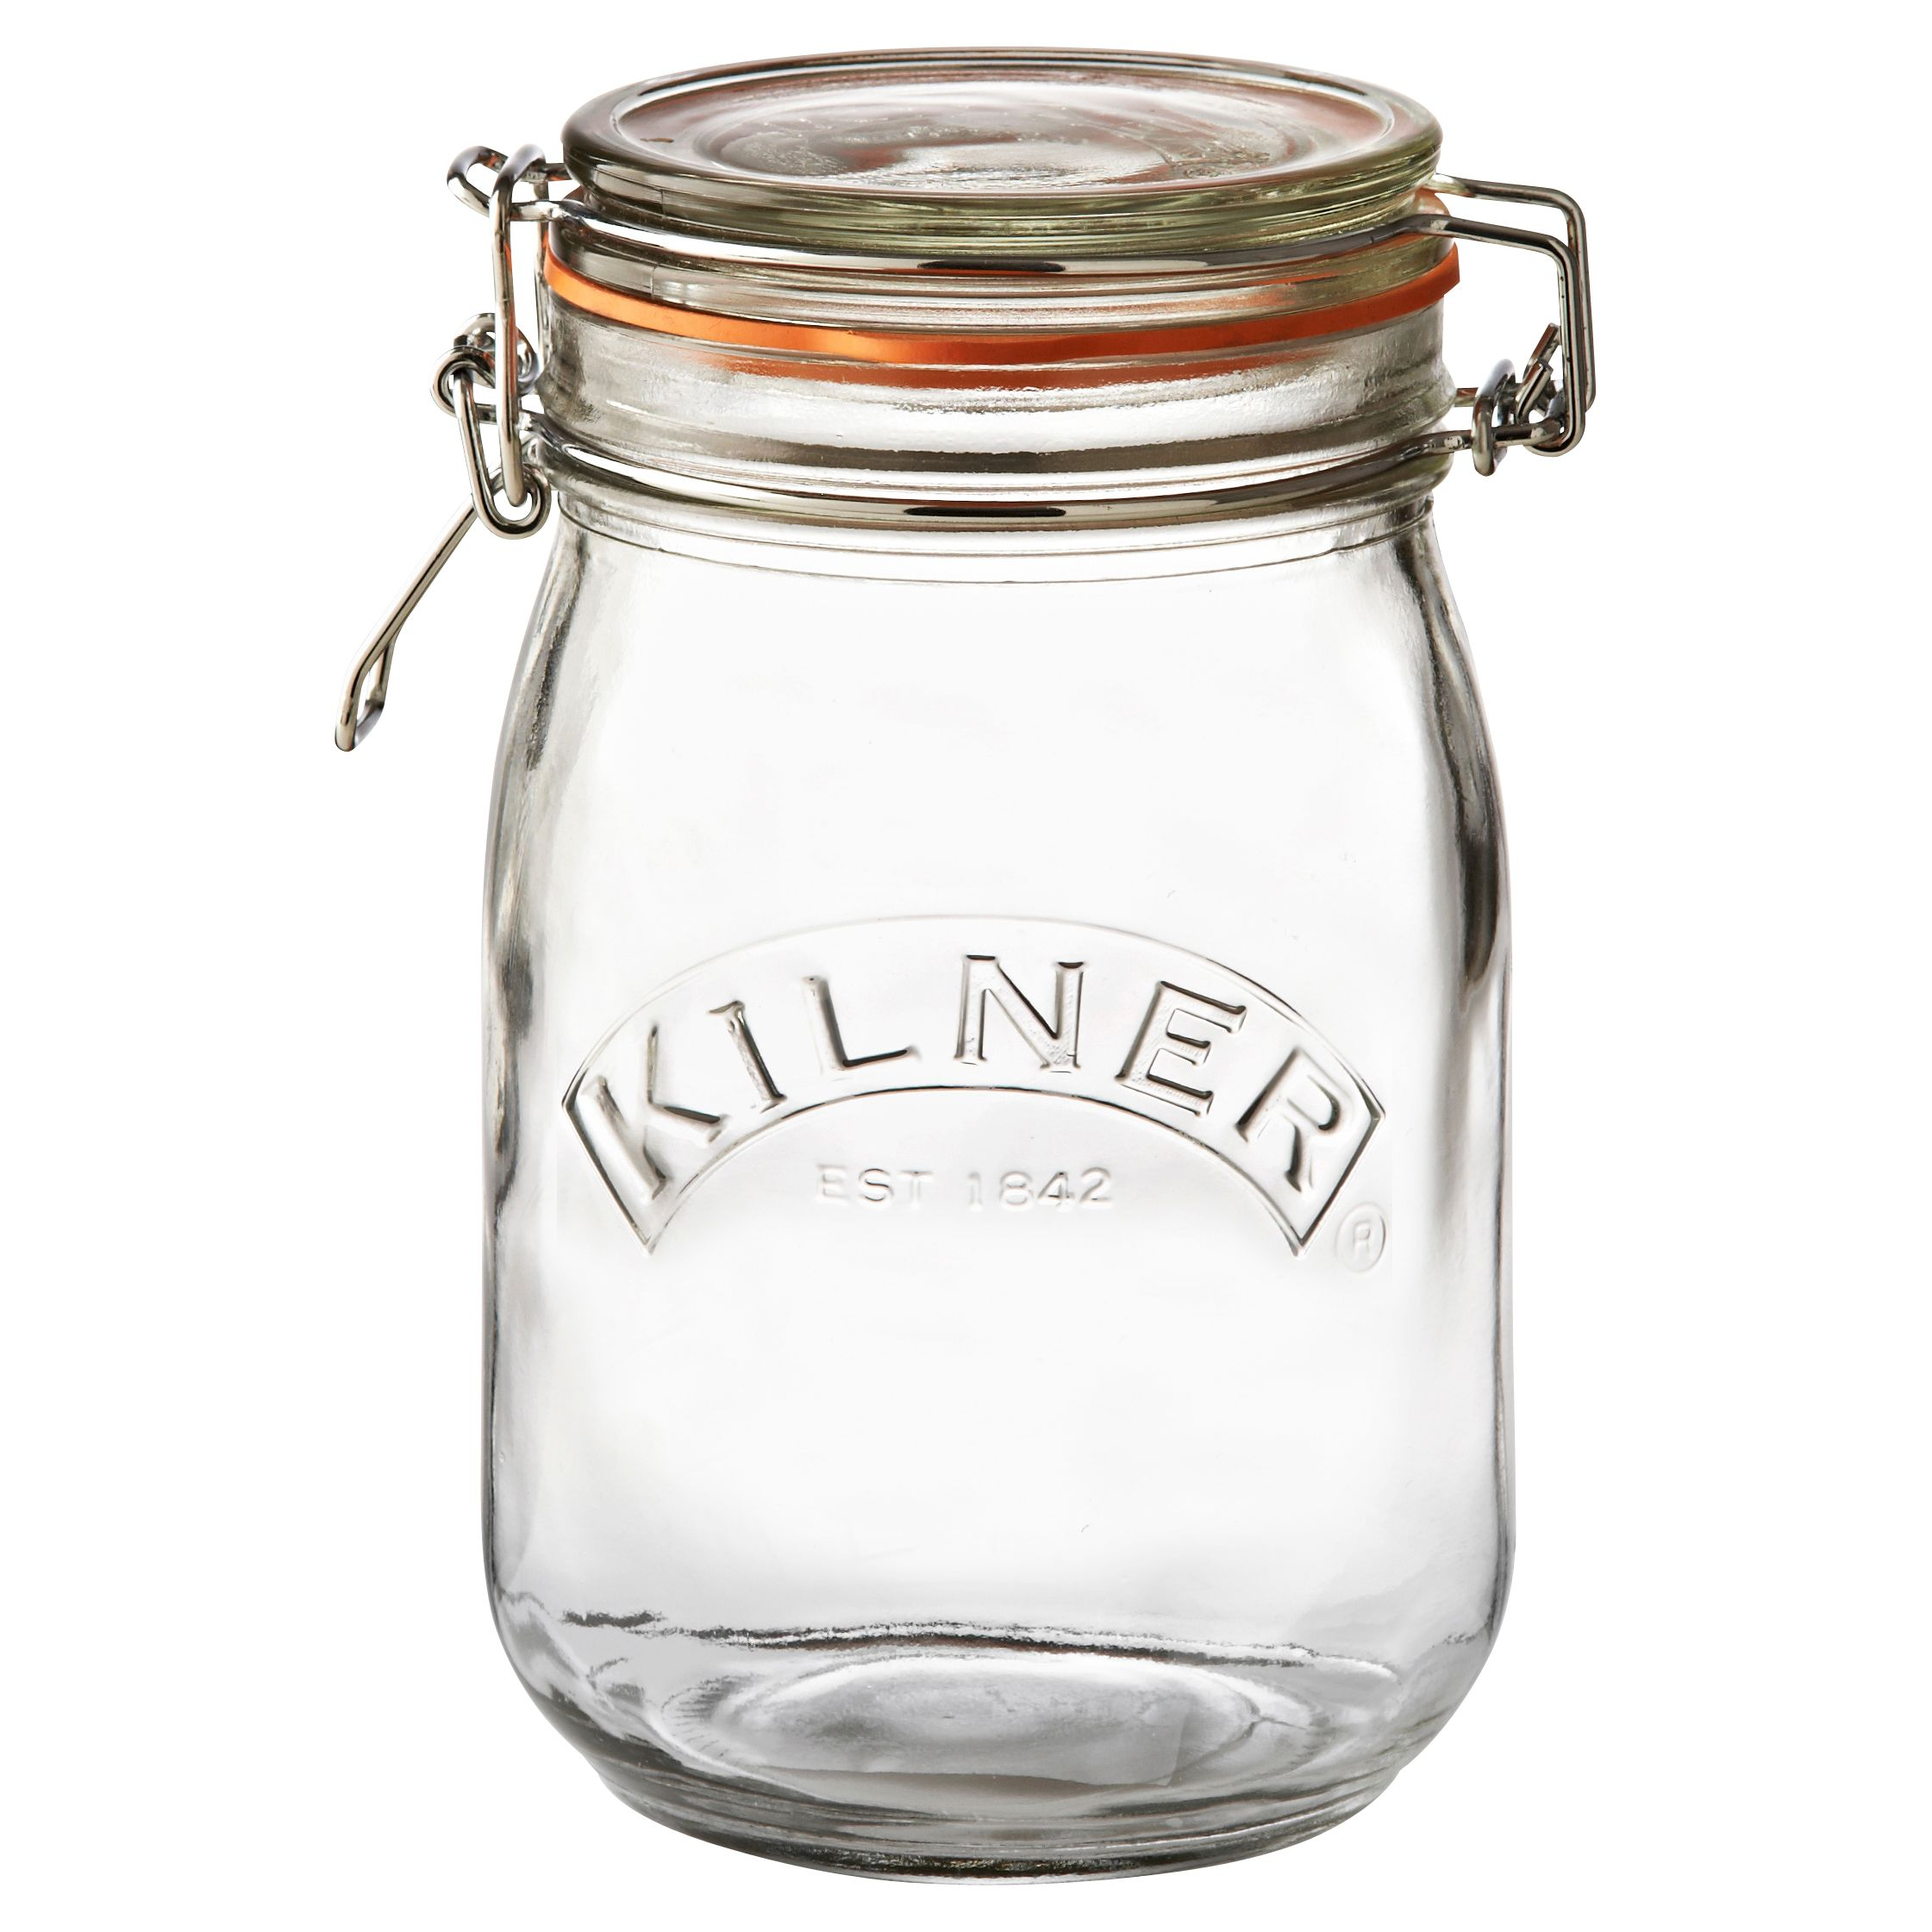 Kilner Clip-top Round Preserving Jar